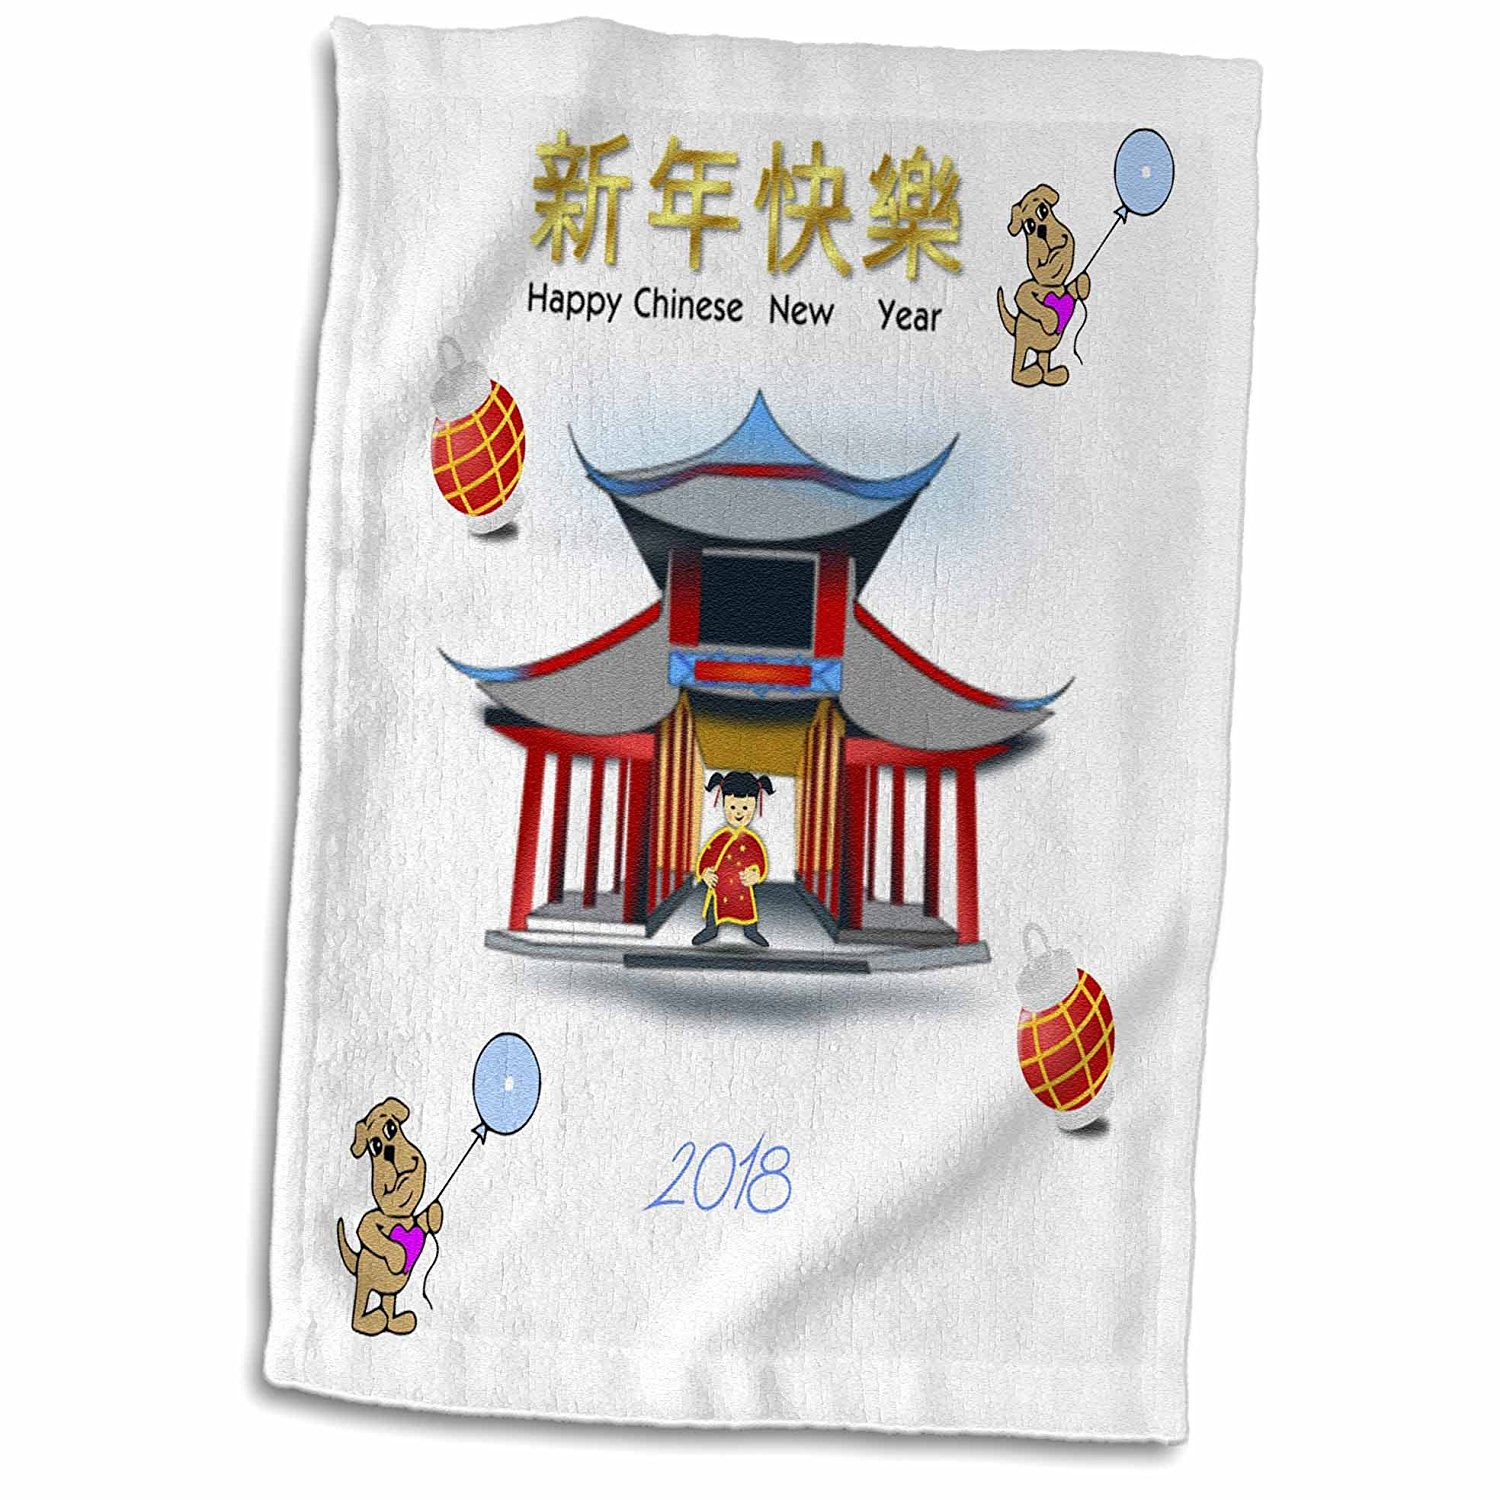 3dRose Chinese New Year - Image of Gold Chinese Writing With Pagoda and Lanterns 2018 - 15x22 Hand Towel (twl_262603_1)